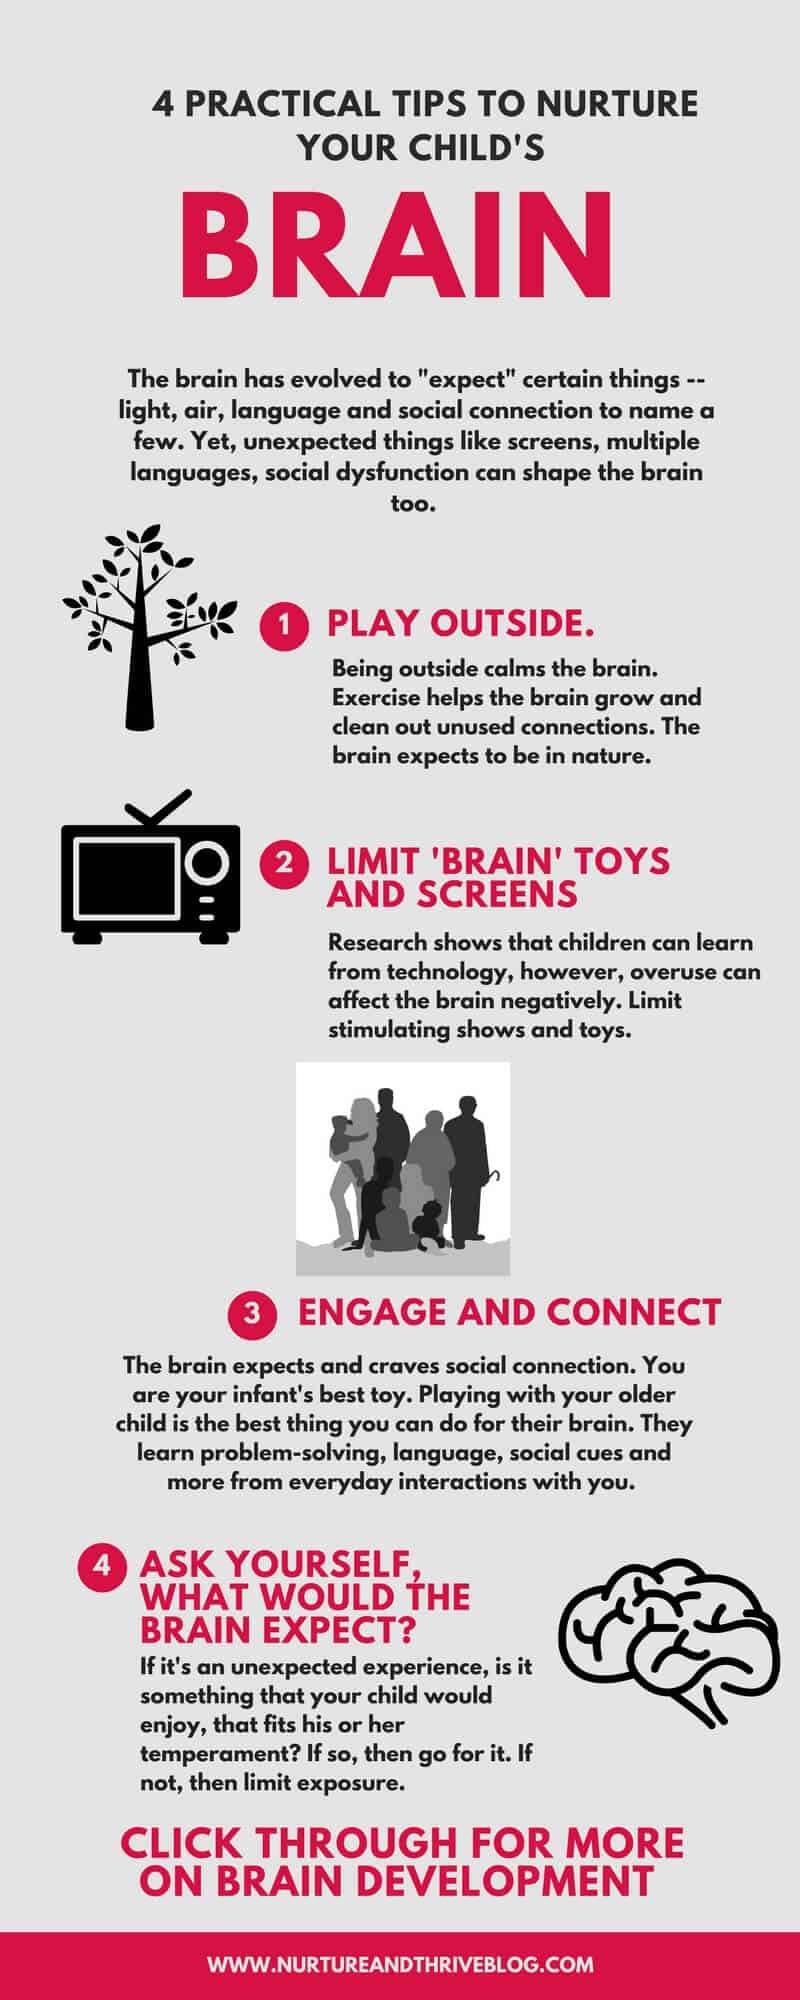 Four ways to nurture your child's brain. How a child's environment can shape their brain development for better or for worse.